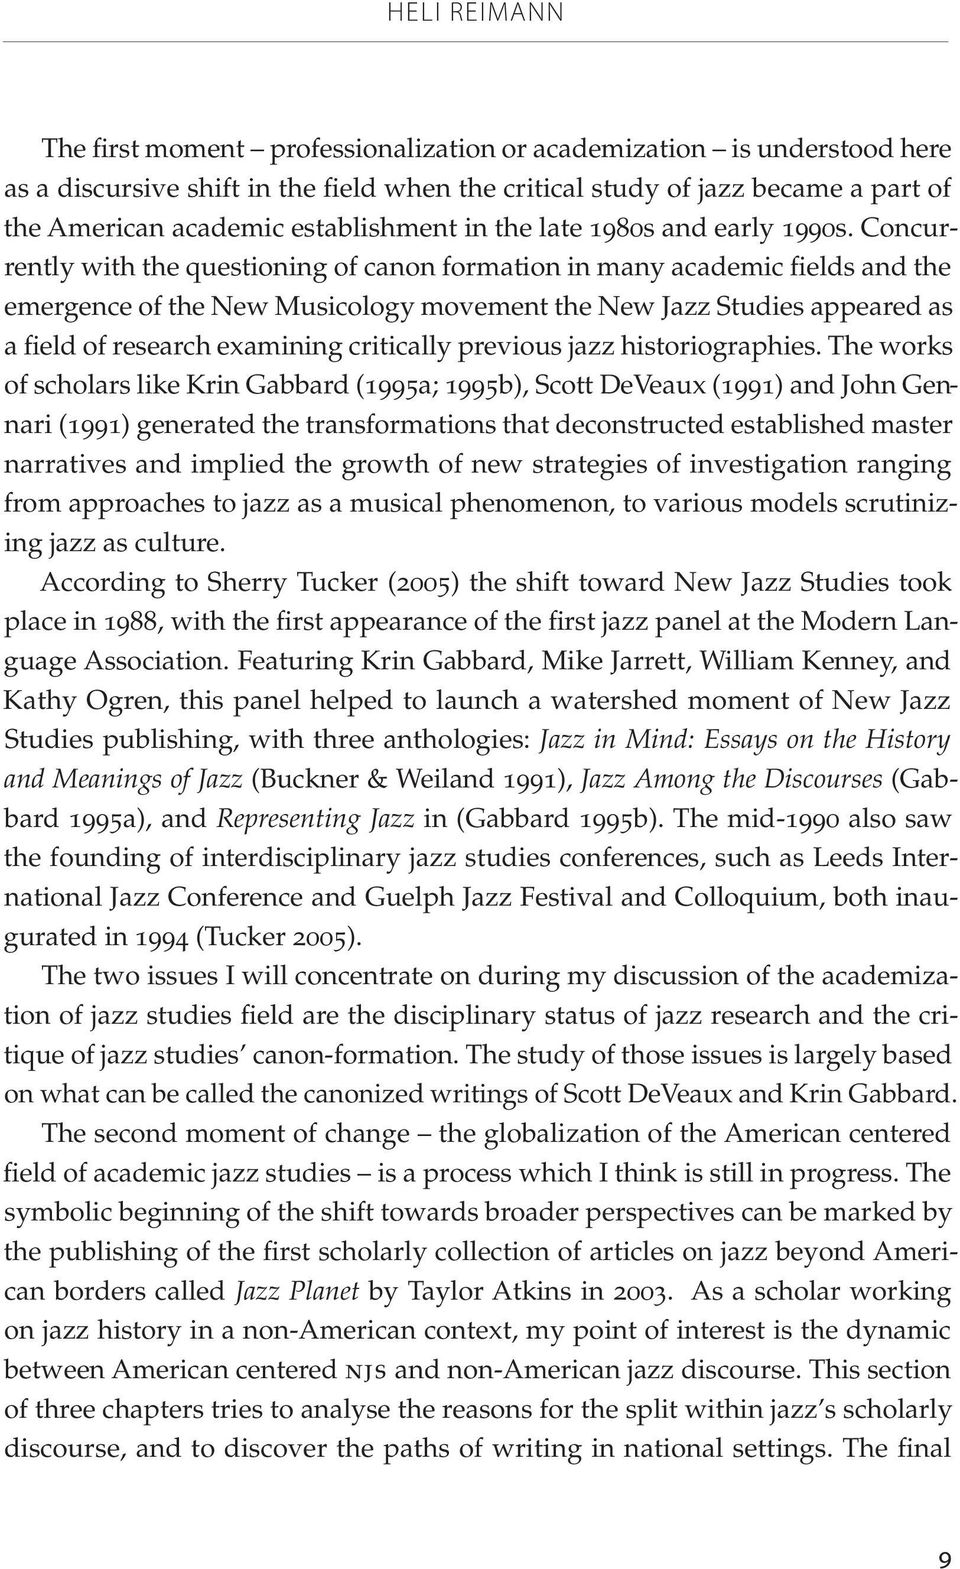 Concurrently with the questioning of canon formation in many academic fields and the emergence of the New Musicology movement the New Jazz Studies appeared as a field of research examining critically